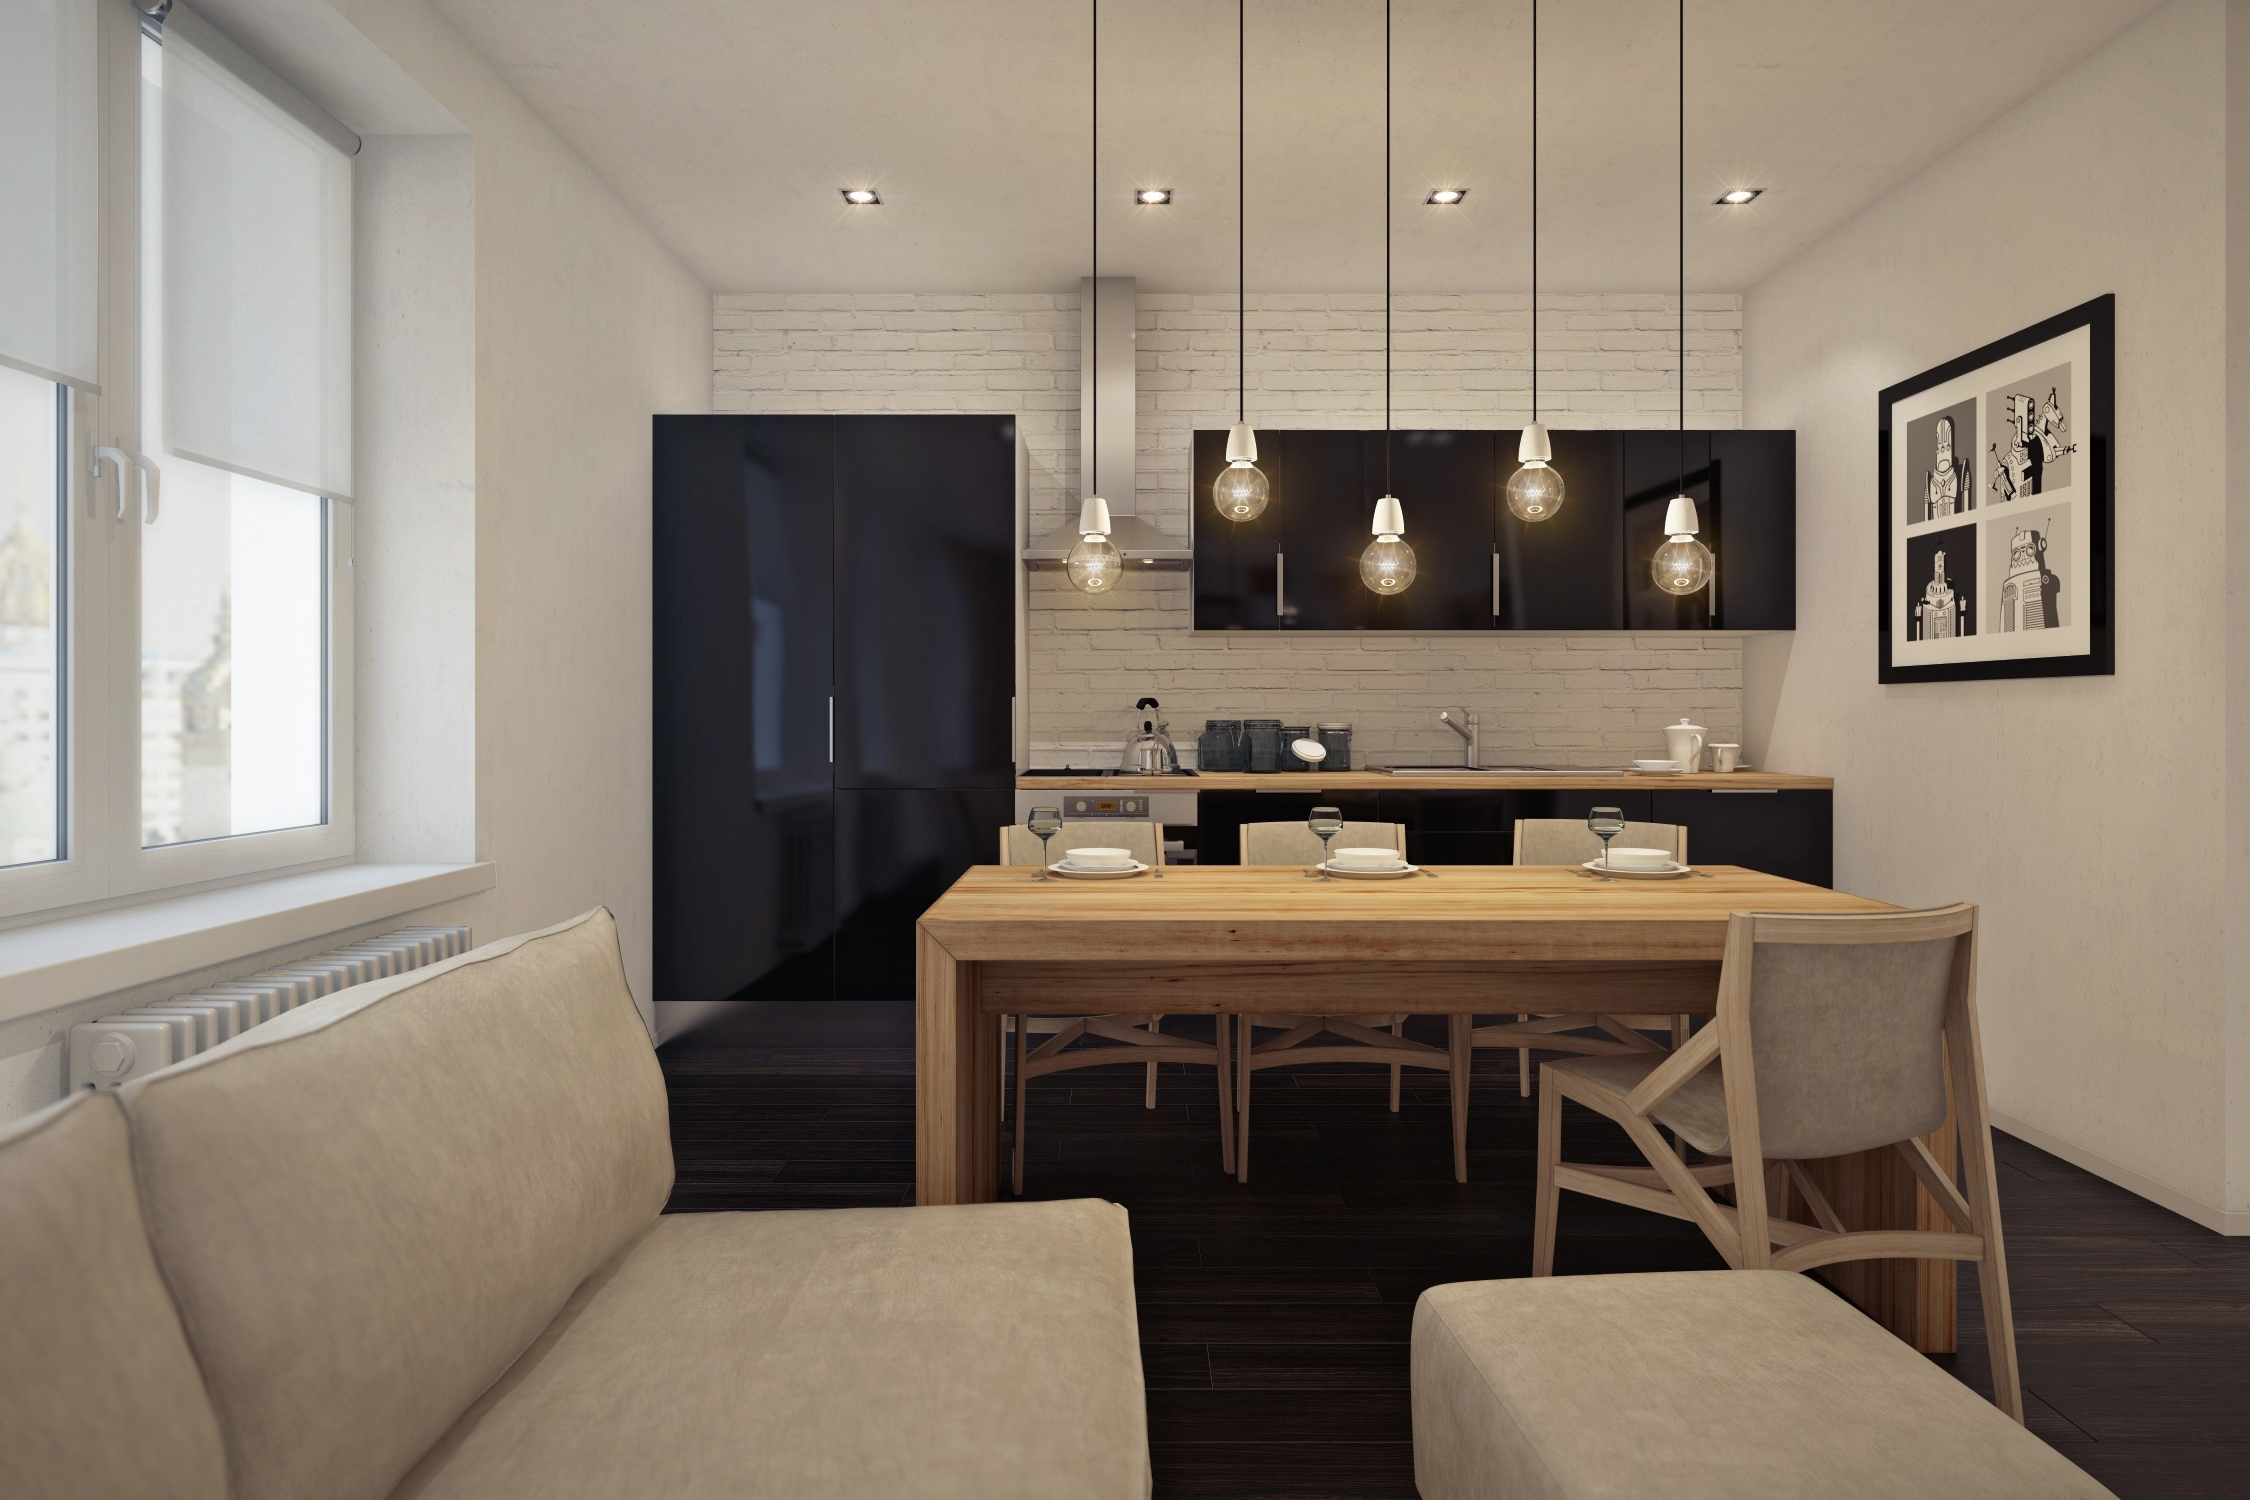 Best Small Apartment Design Ideas – Interior Design Small intended for Best Layout For Garden Woods Apartments Design Ideas